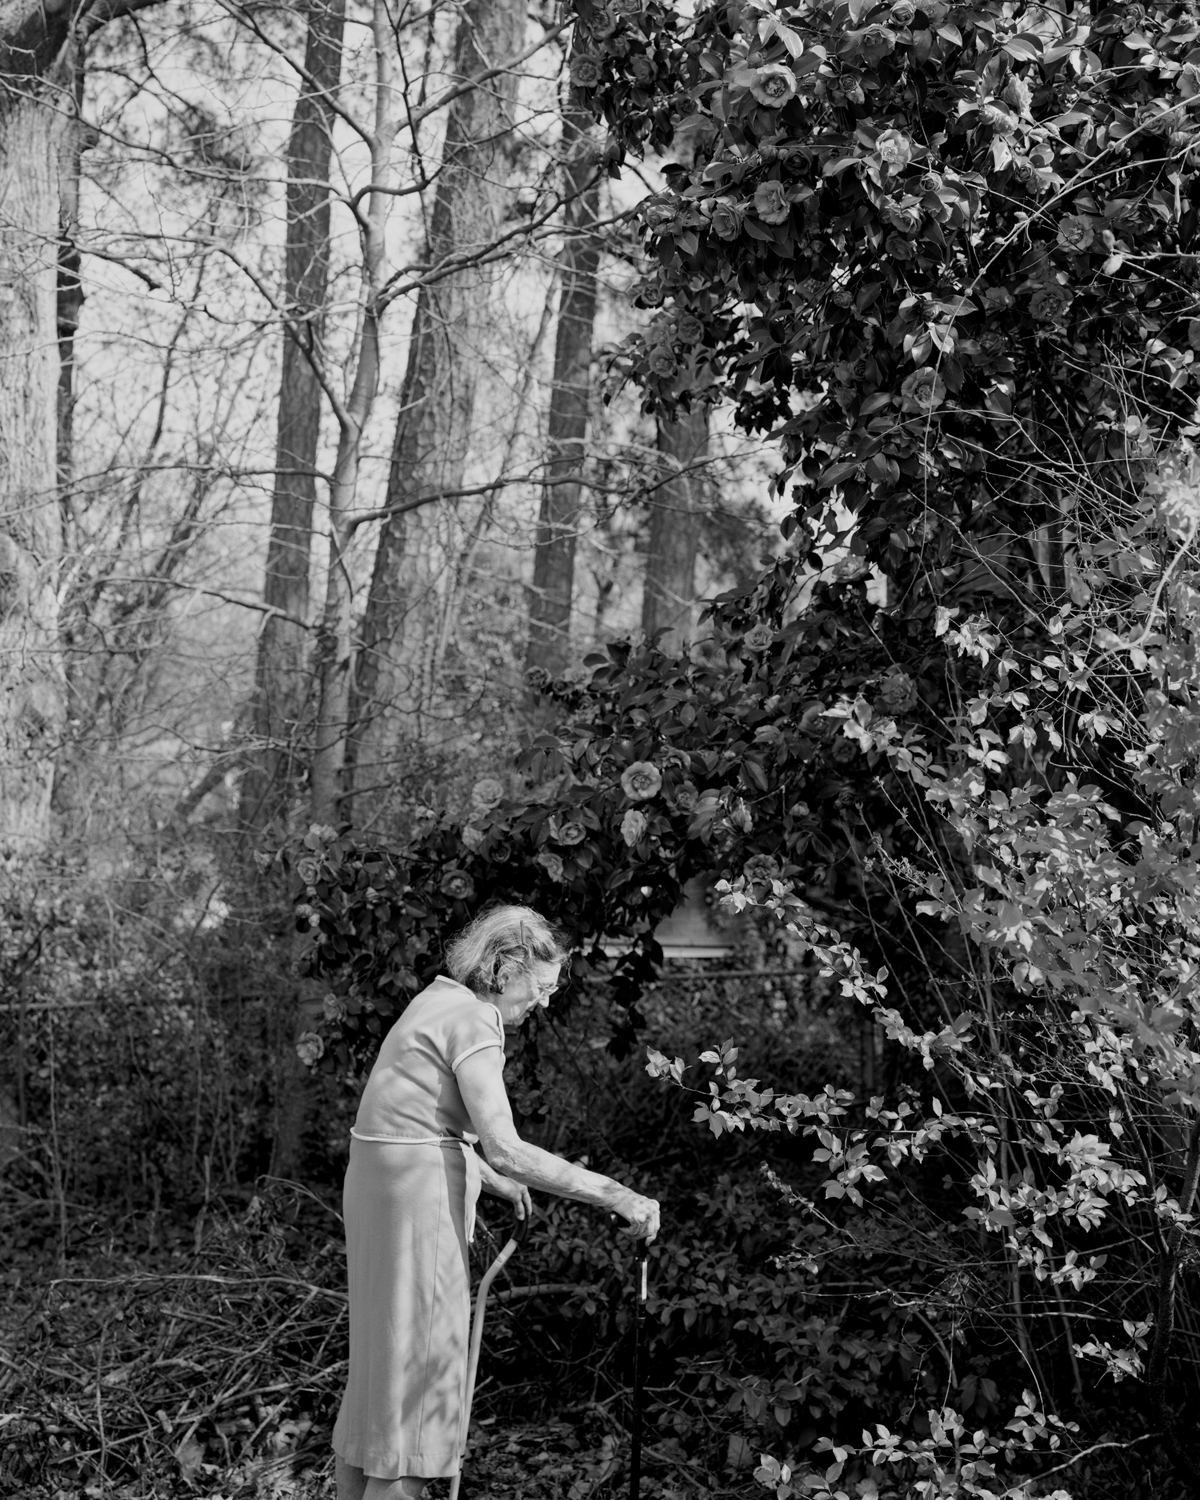 Susan Worsham , Margaret with Giant Camellia Japonica,  2012.Archival pigment print, 50 x 40 inches.Image courtesy of the artist and Candela Books +Gallery, Richmond.